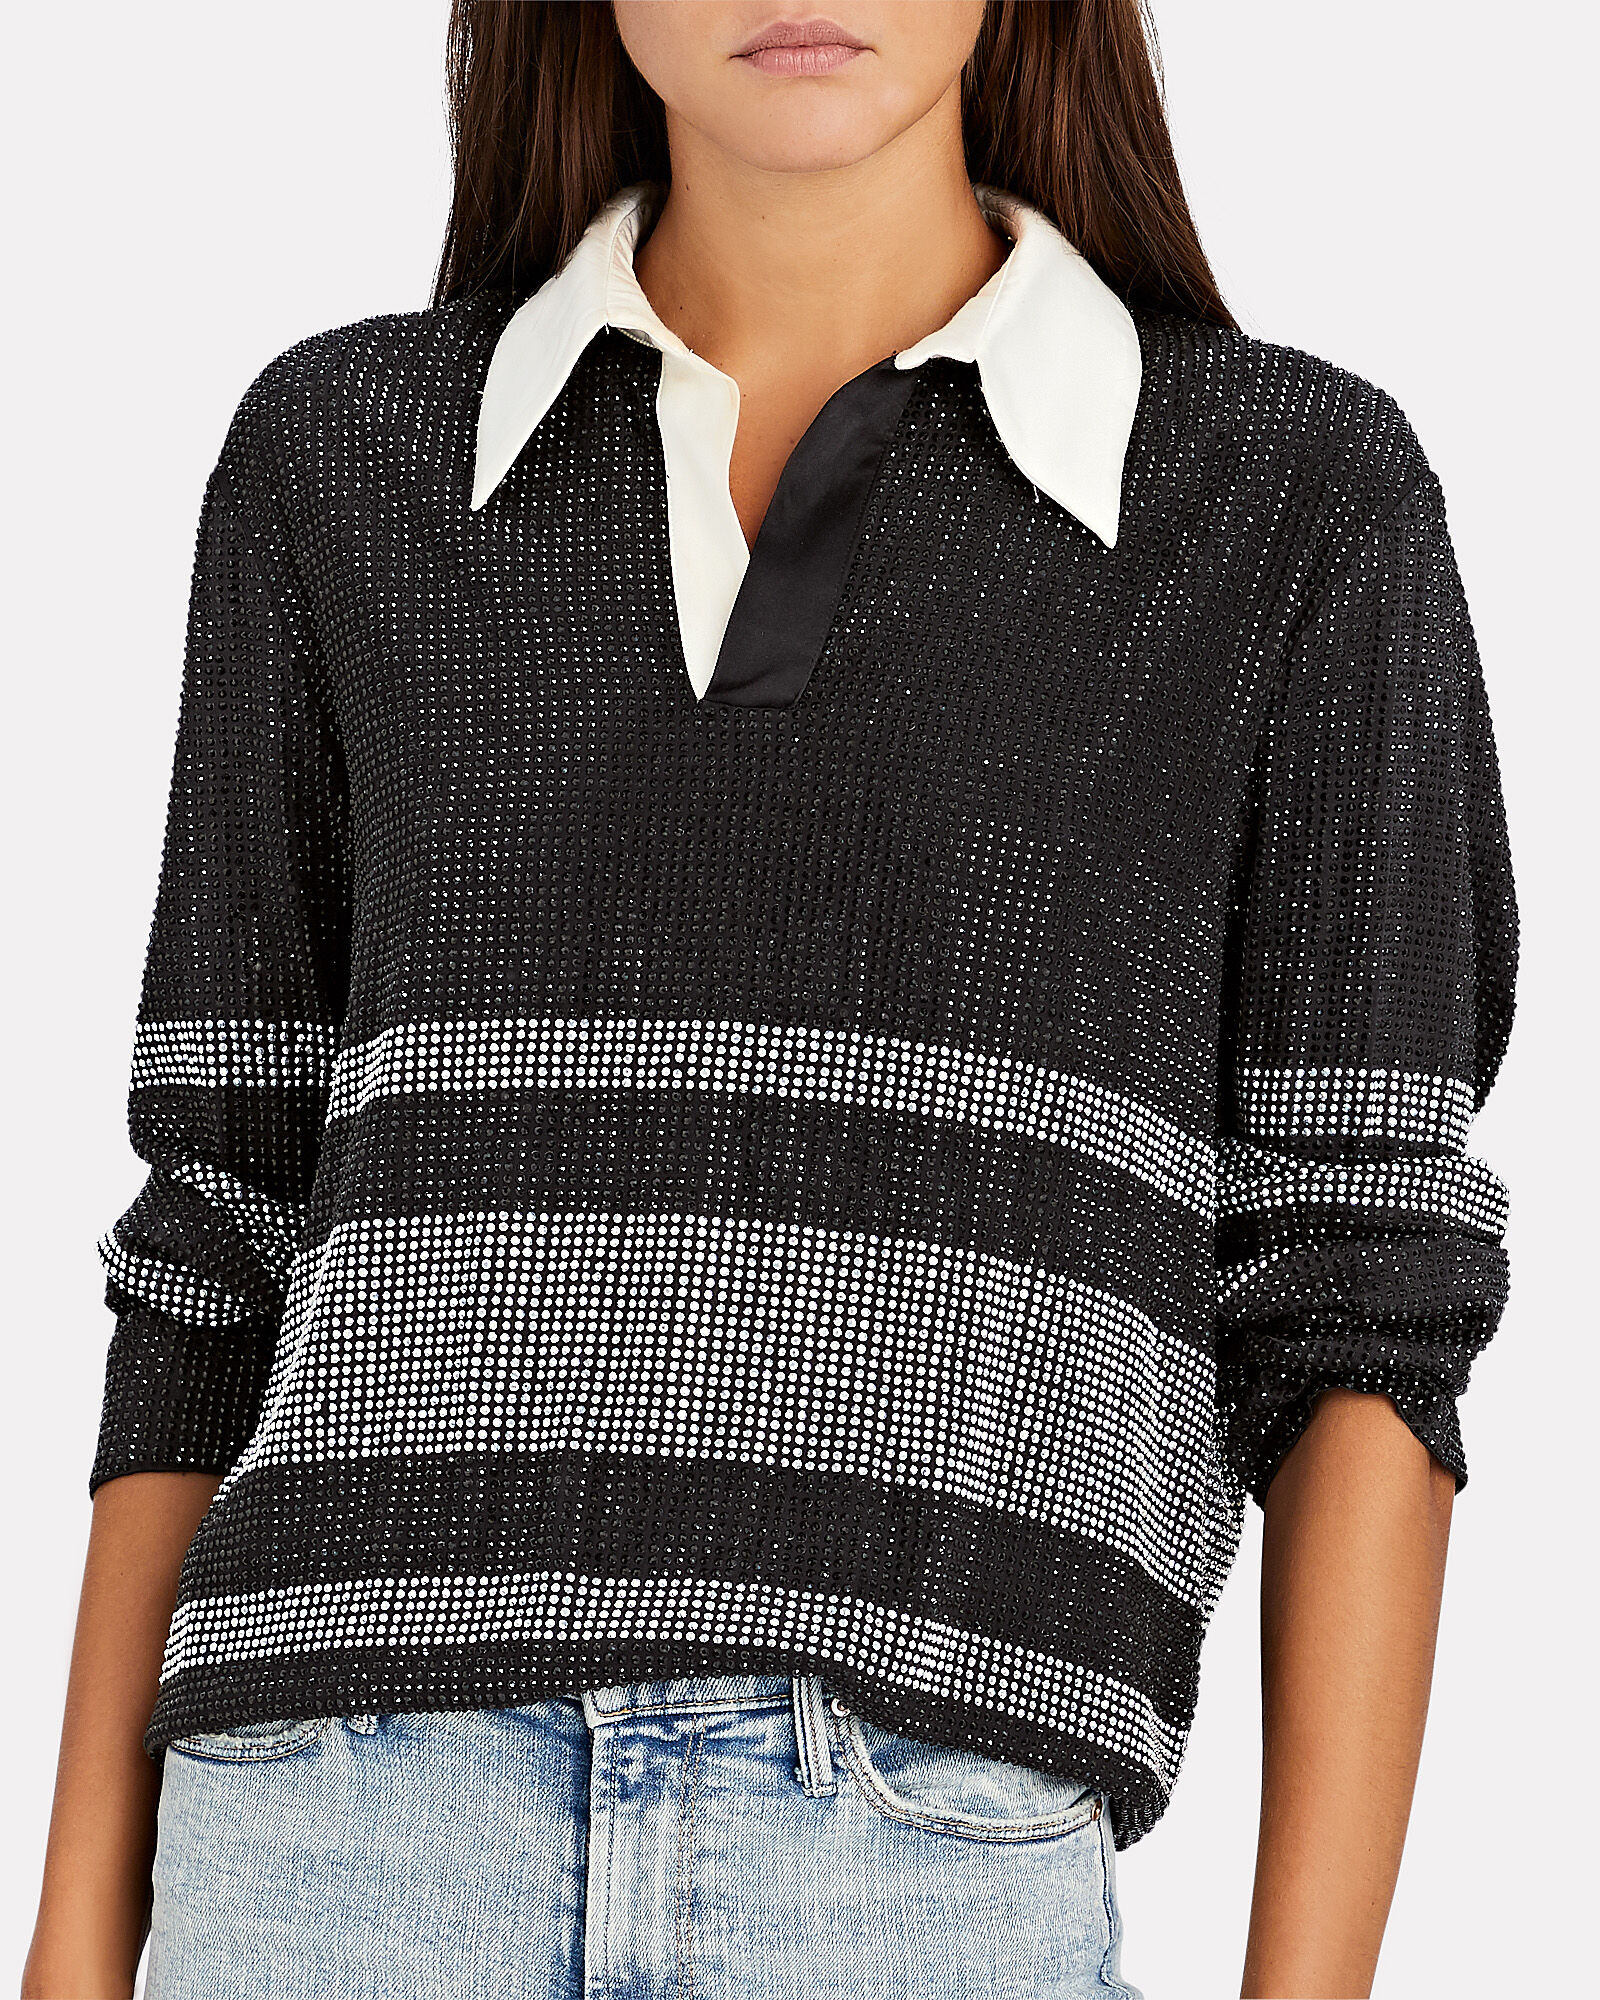 Joie Striped Crystal Rugby Top, BLK/WHT, hi-res